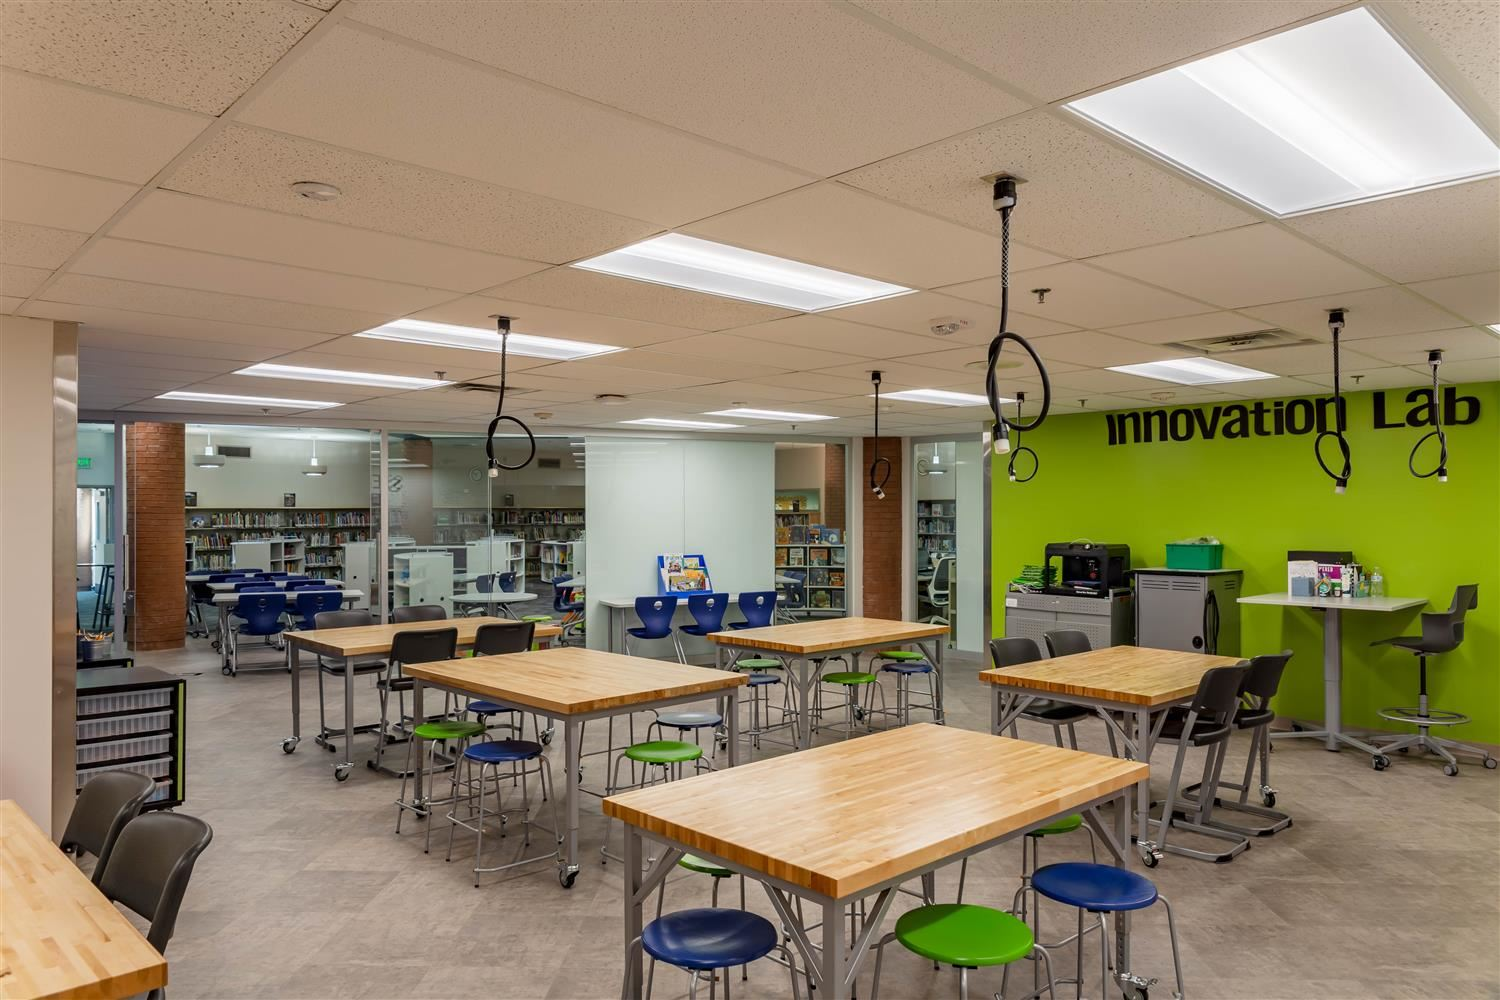 Image of new innovation space at Rolling Hills Elementary